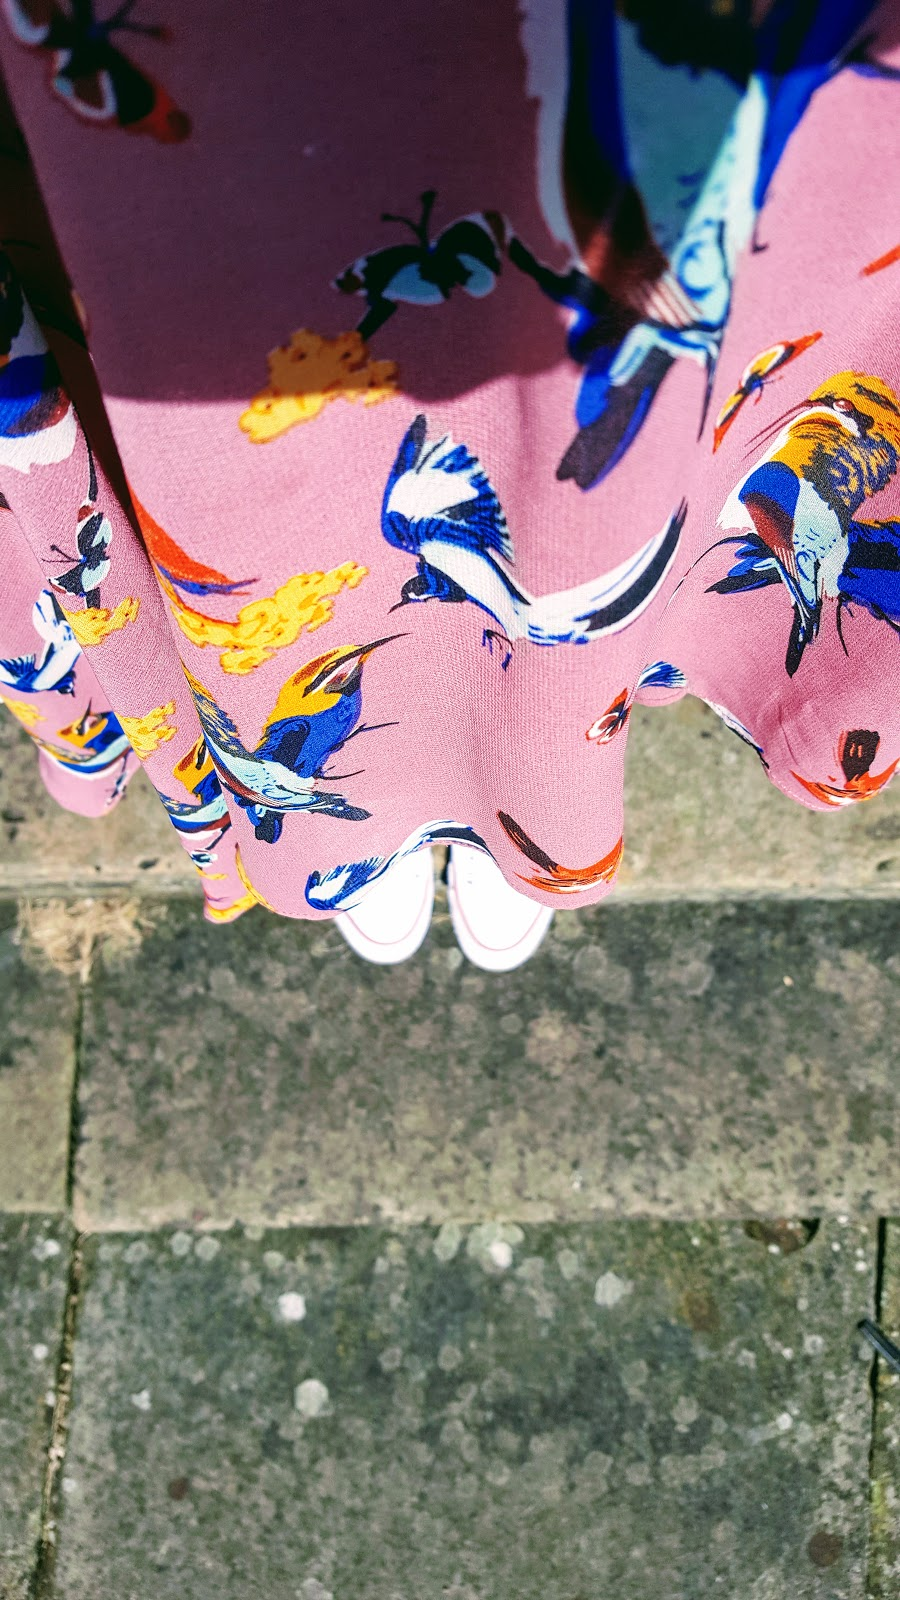 Bakewell Church: What I Wore: Over 40 Style